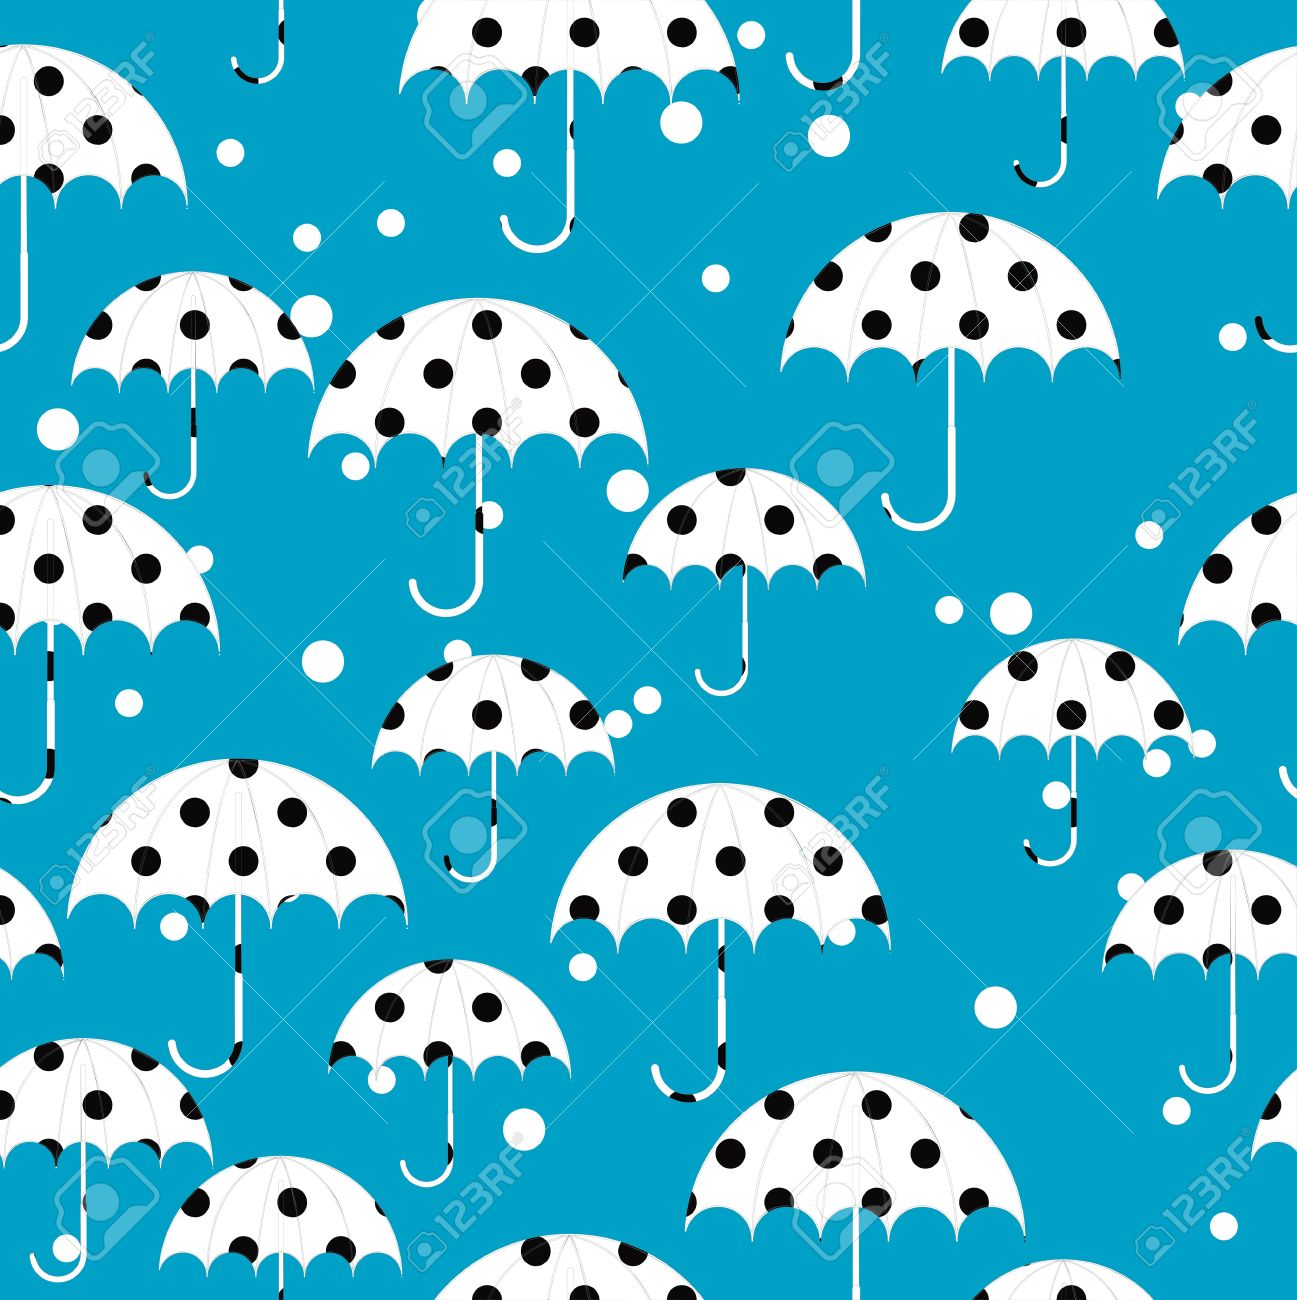 Umbrella Pattern Simple Design Ideas